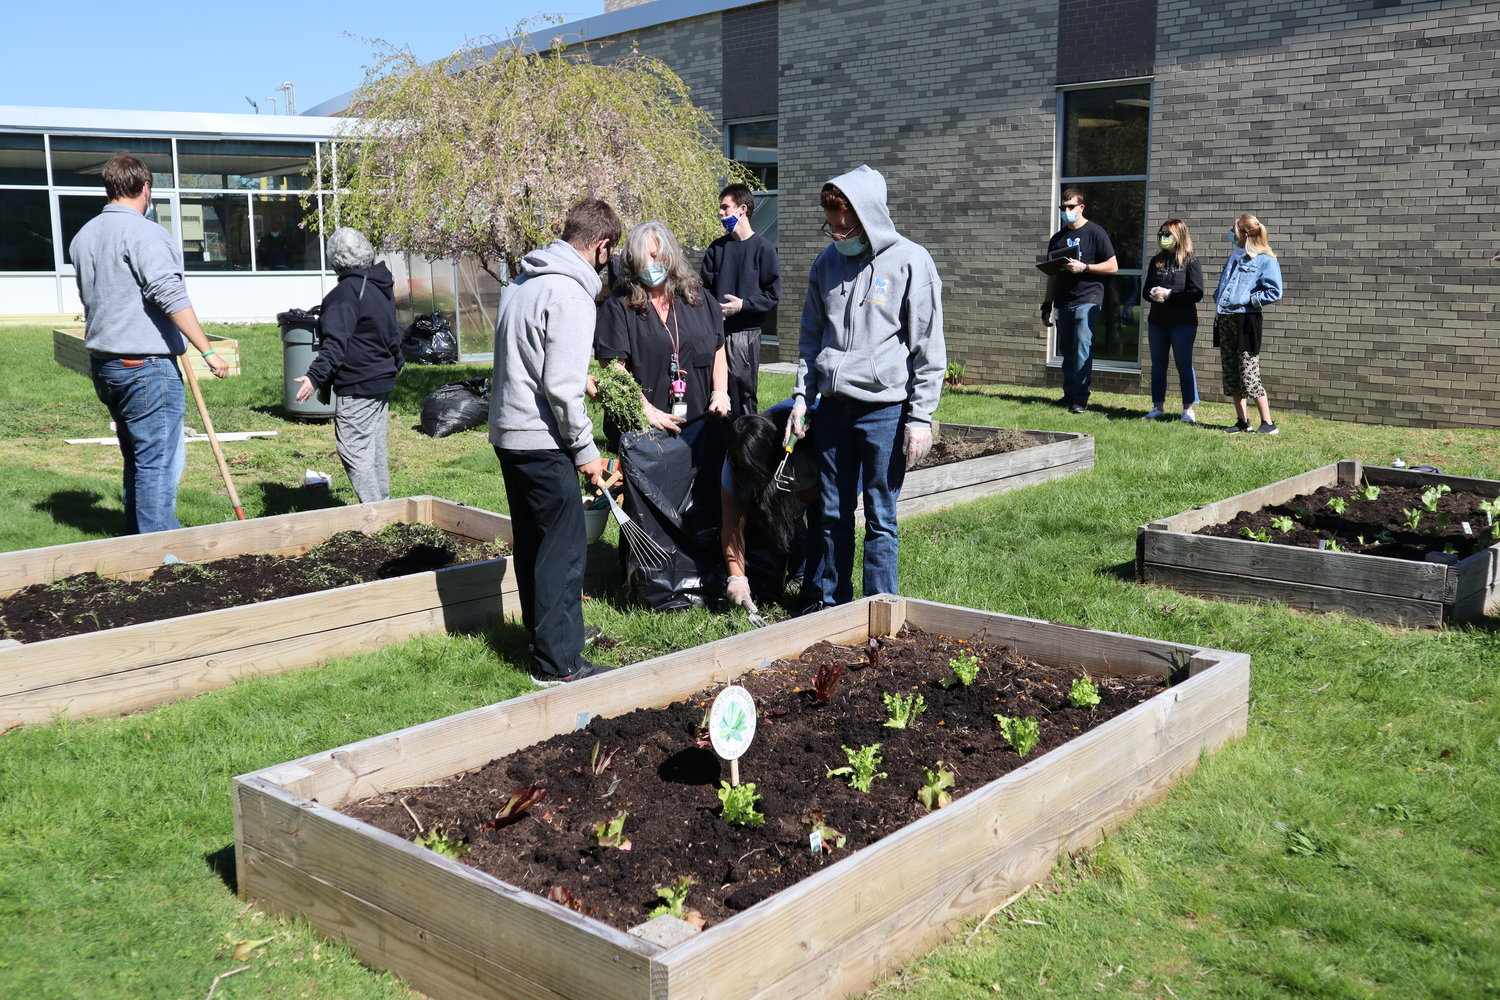 The garden boxes sit in the Brookside School courtyard, and its crops will eventually be harvested.